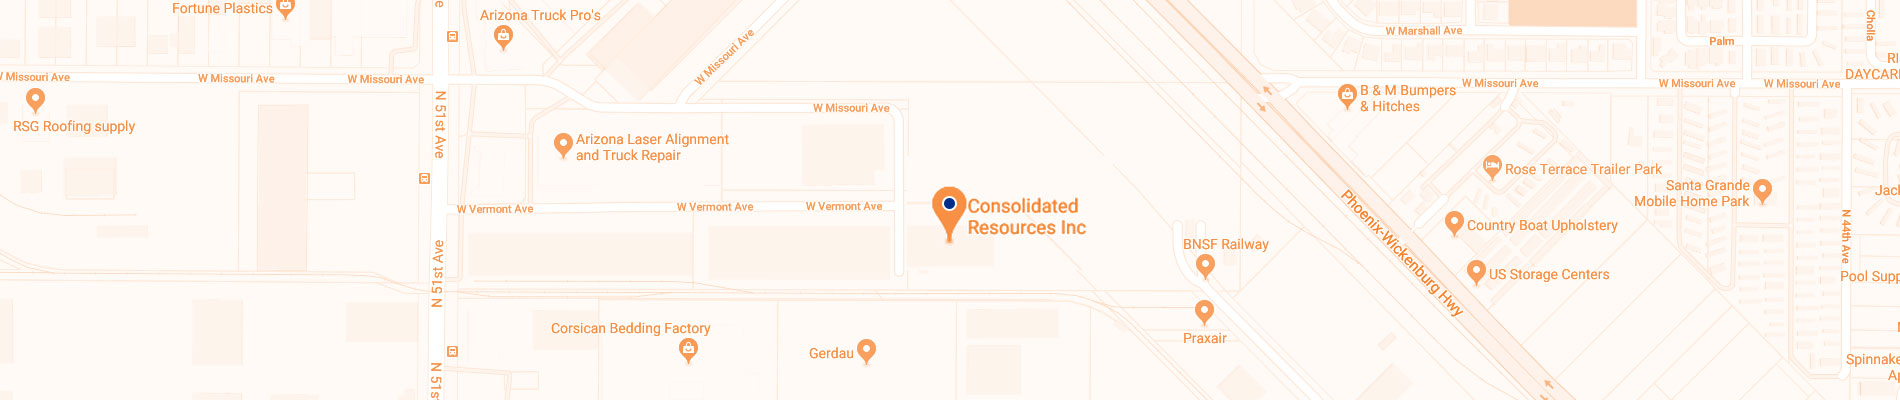 Phoenix Metal Recycling Industrial & Commercial